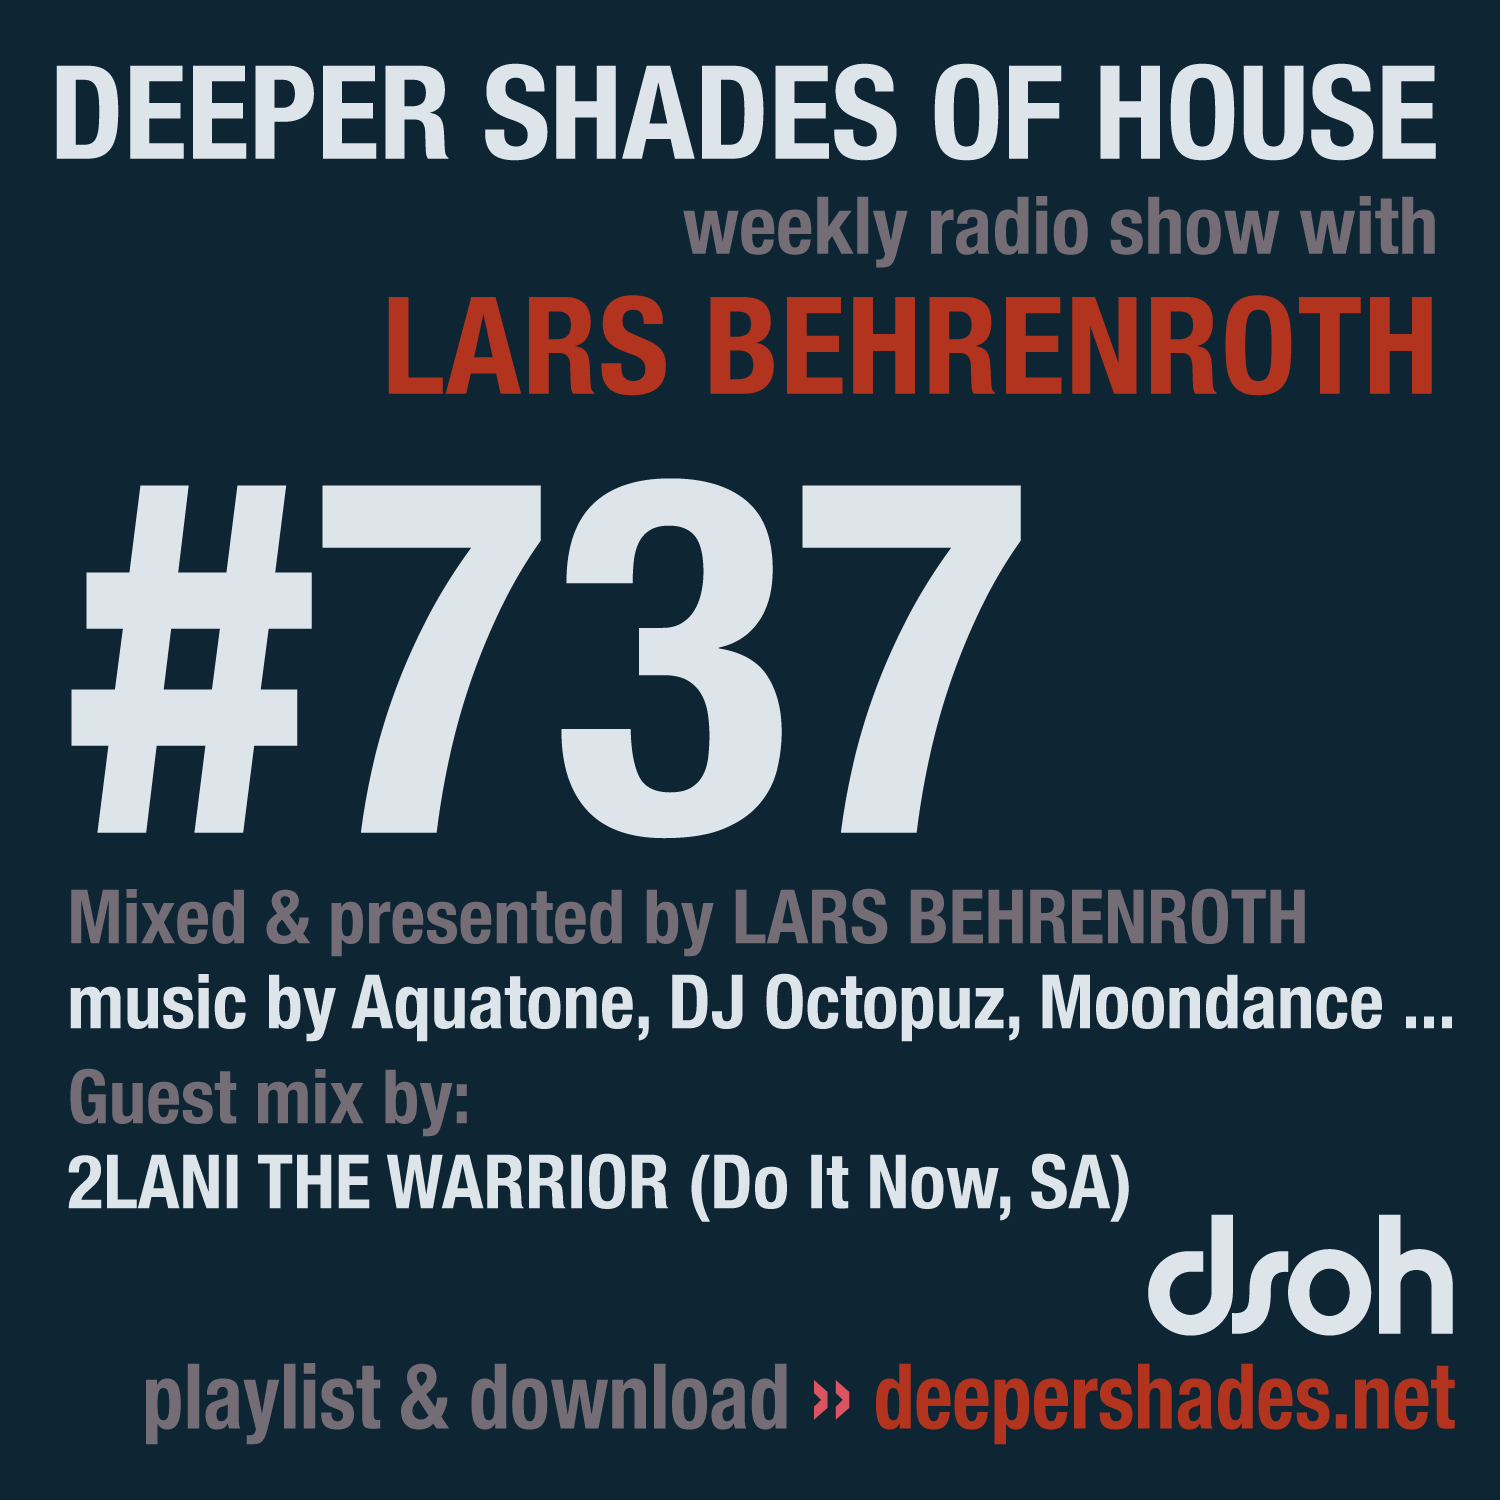 Deeper Shades Of House 737